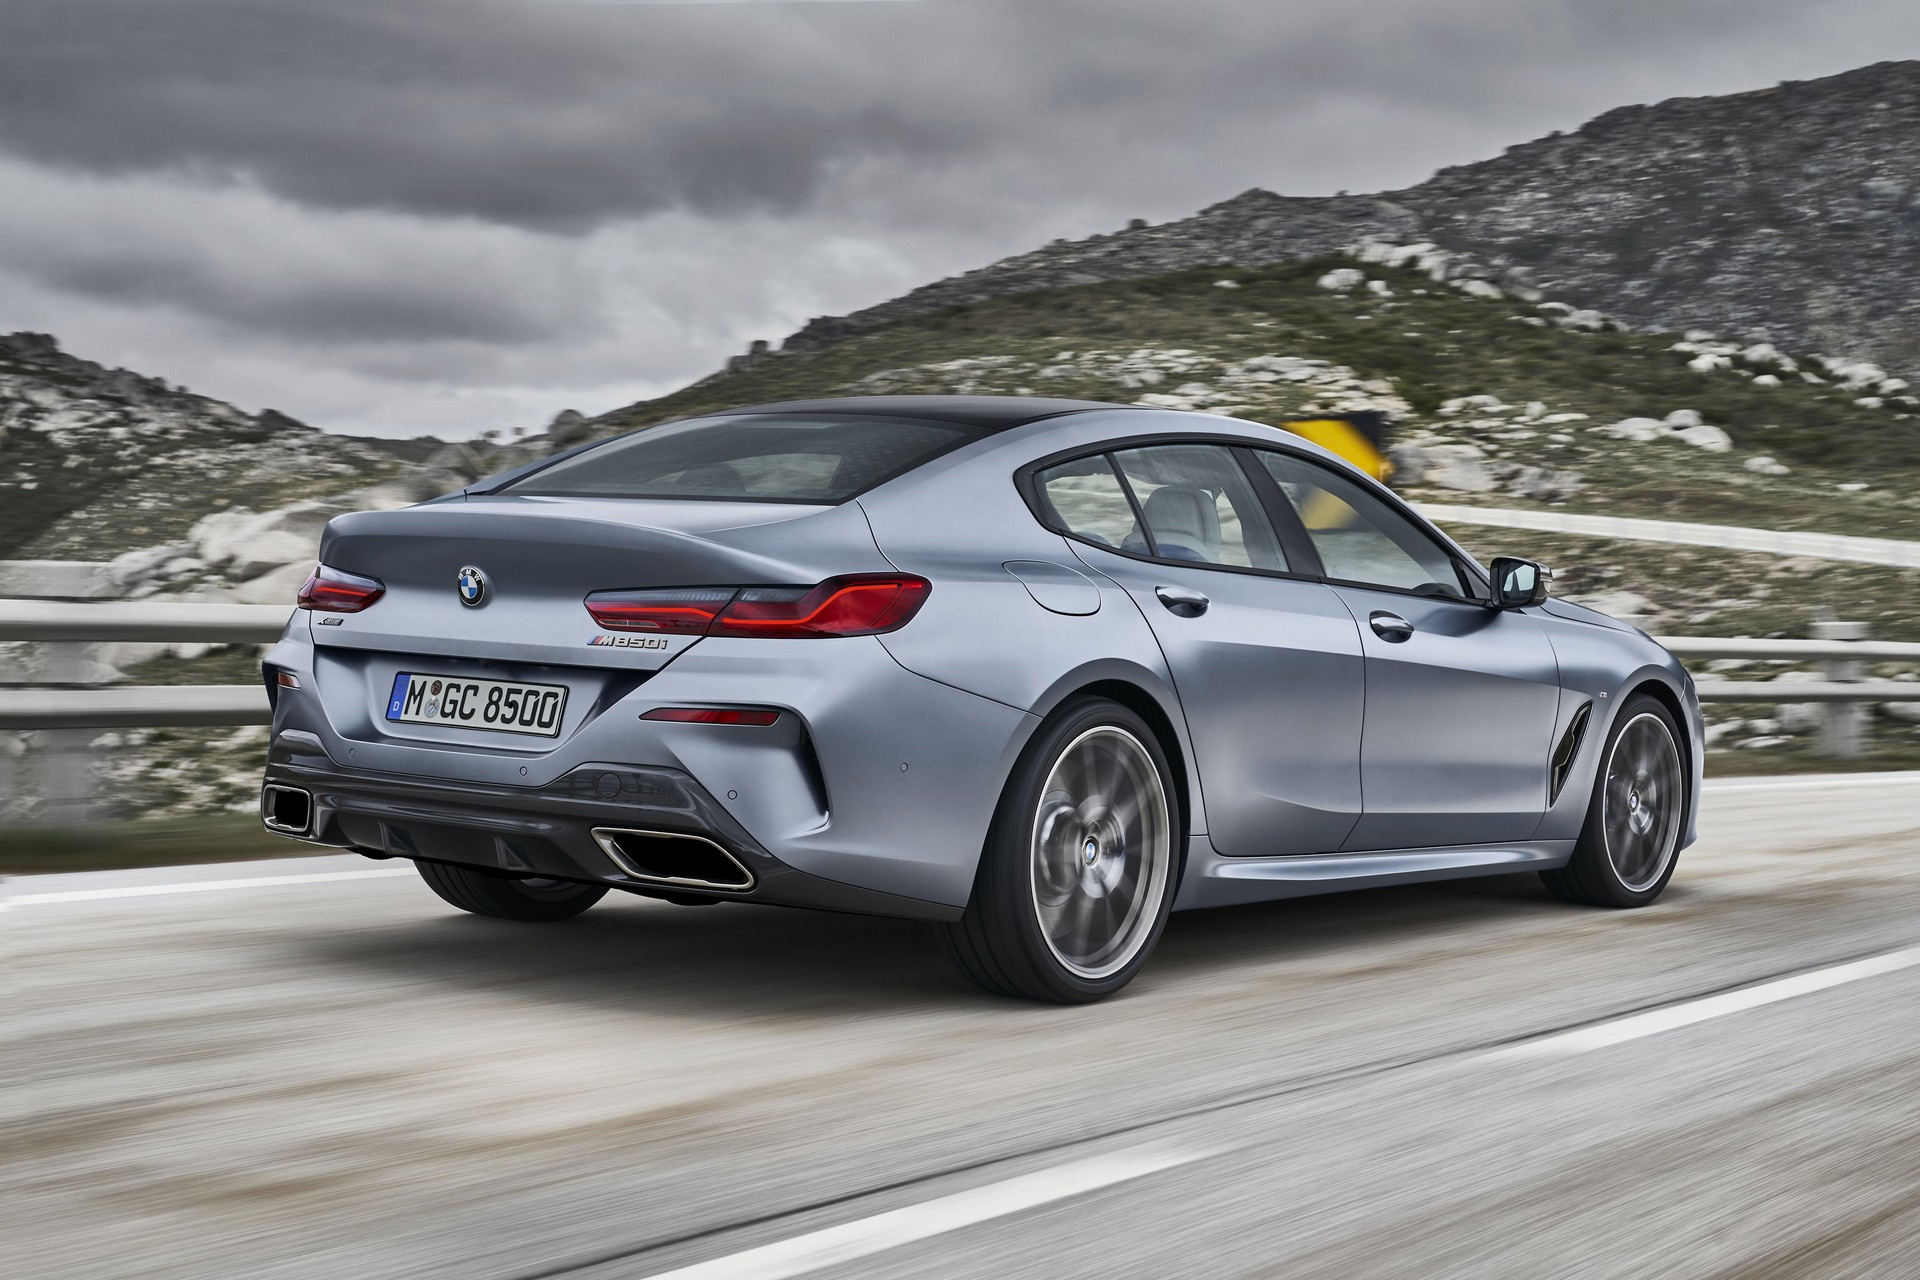 BMW Rolls Out Sporty 8 Series Grand Coupe at werd.com